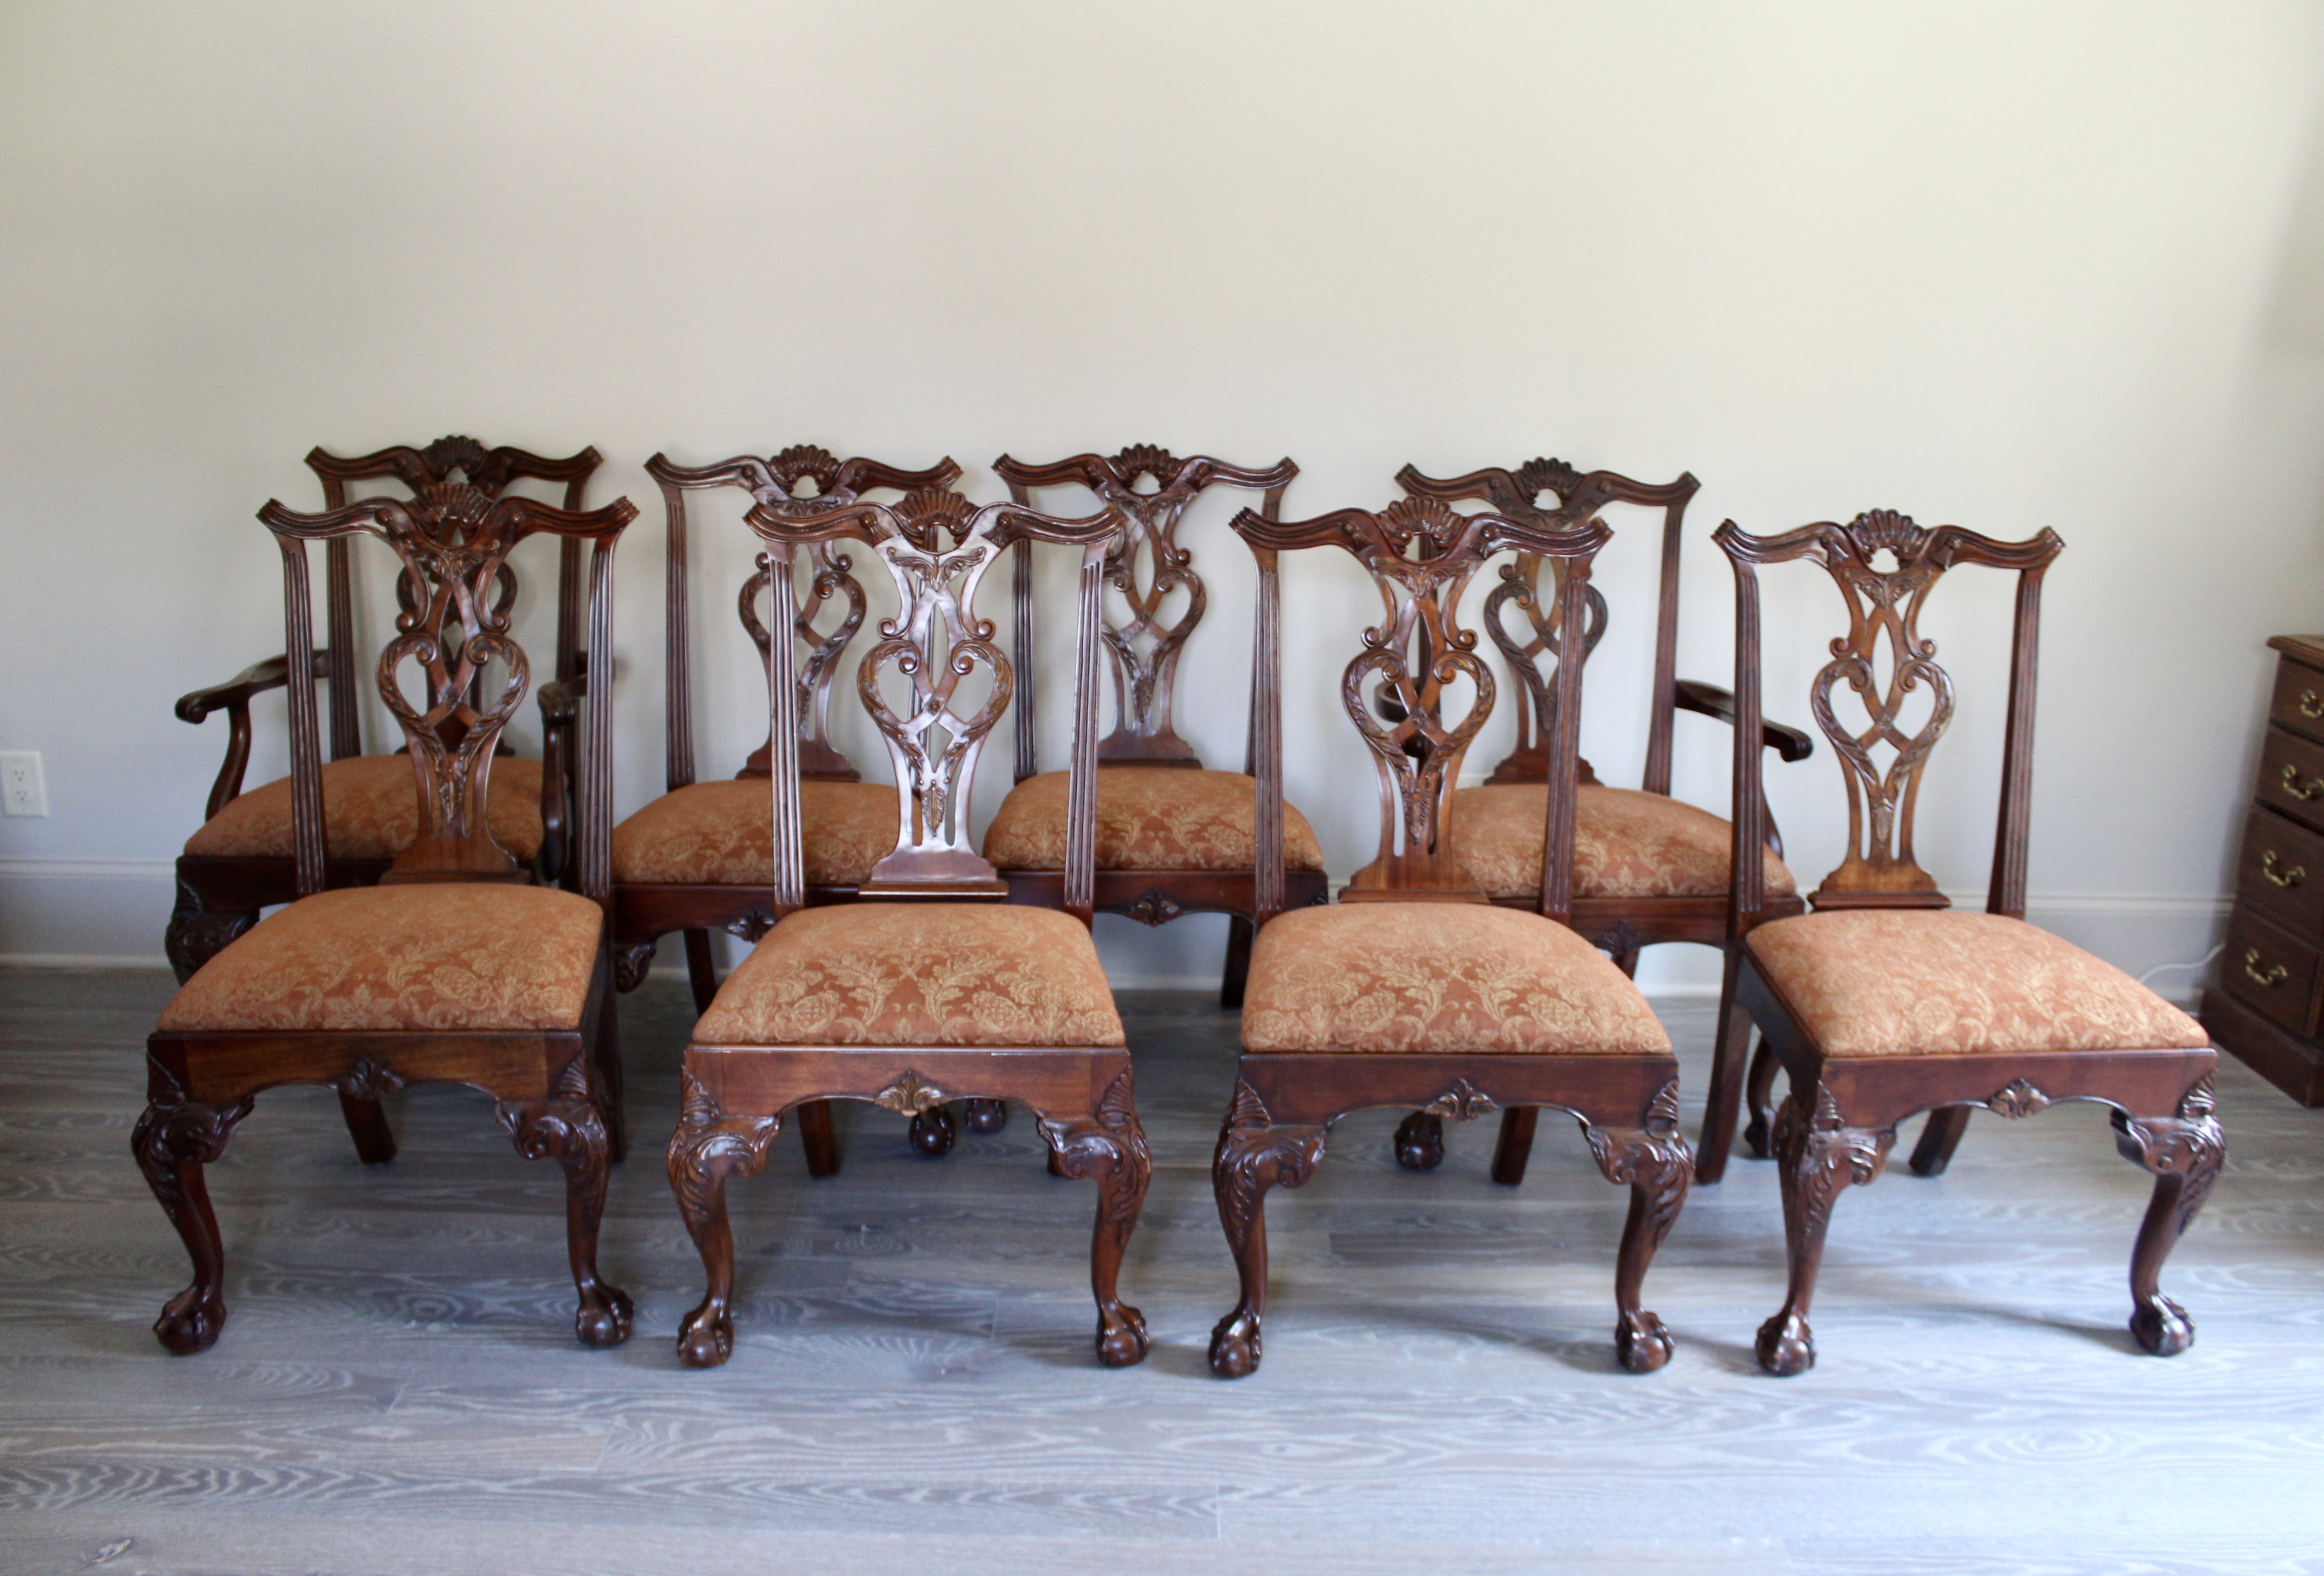 SOLD: Henredon Dining Chairs